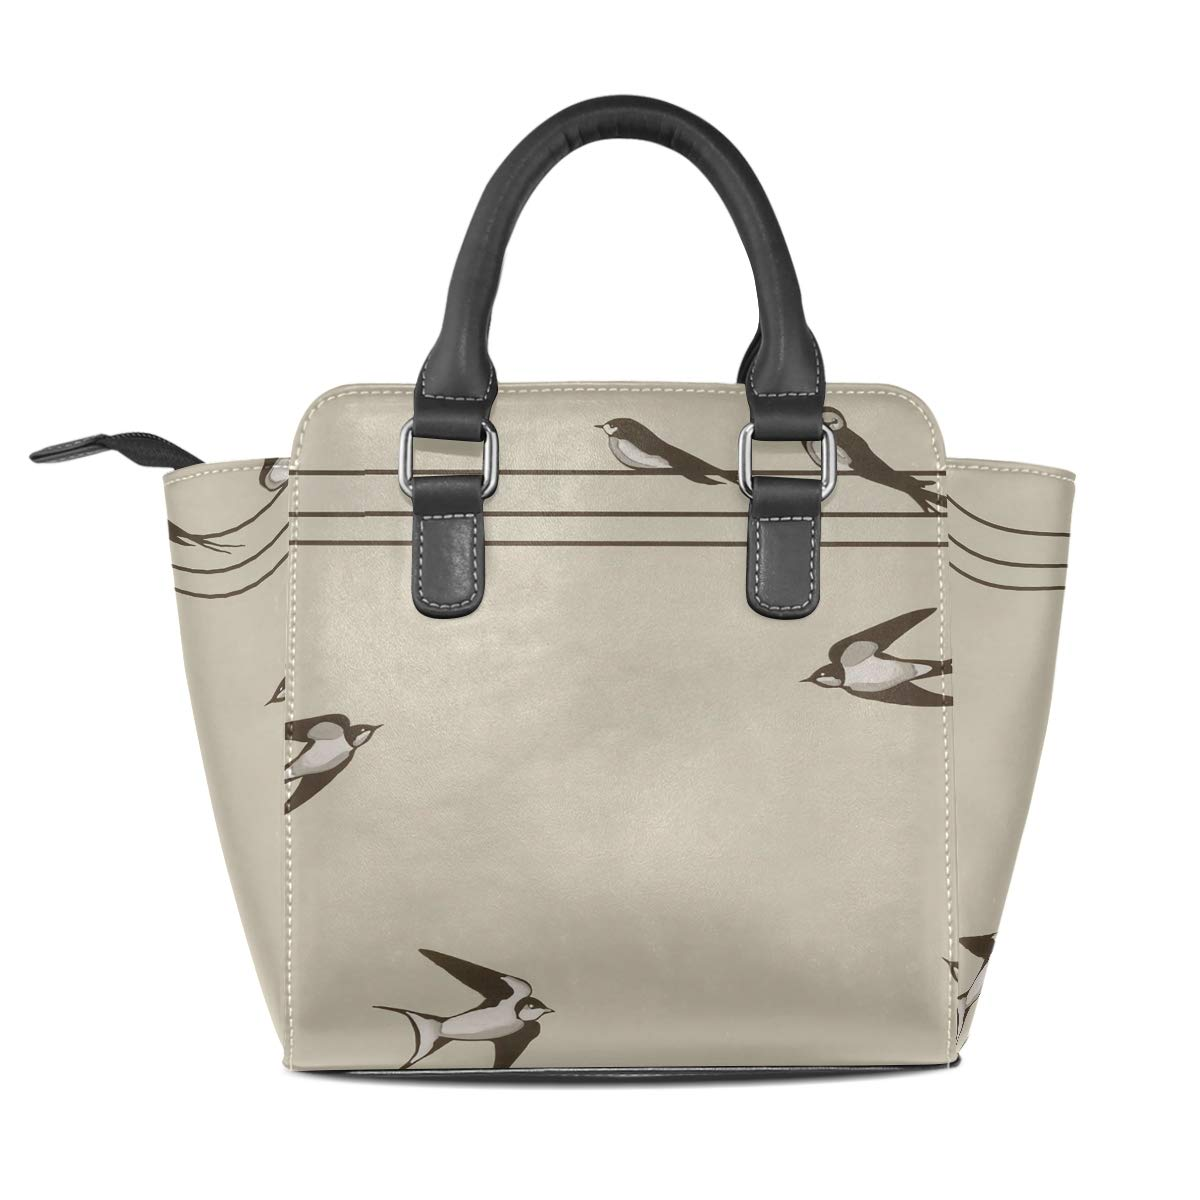 Bird Tree Art Leather Handbags Purses Shoulder Tote Satchel Bags Womens